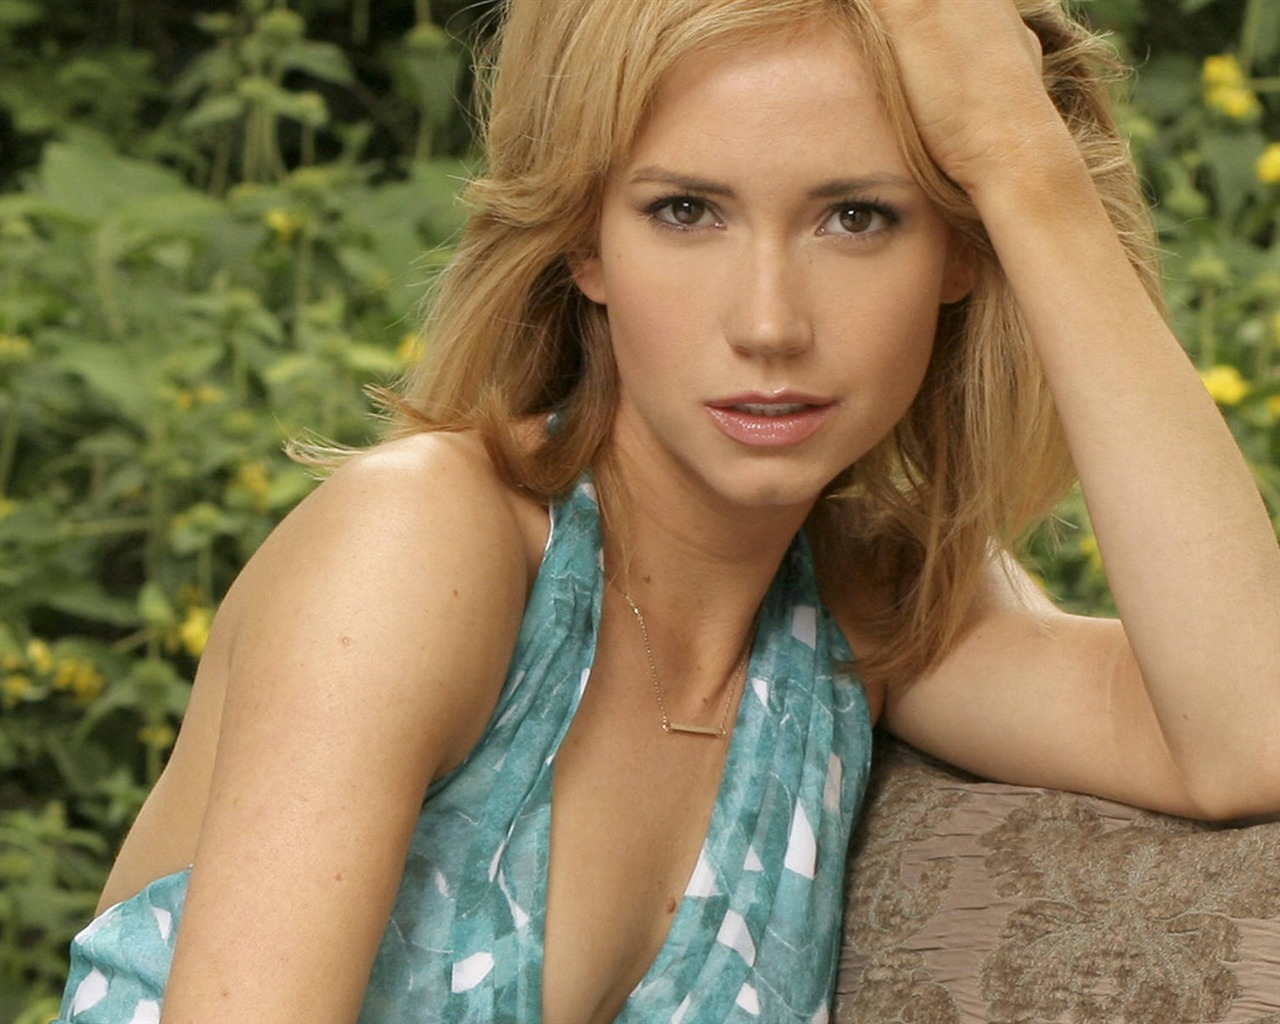 Ashley Jones #006 - 1280x1024 Wallpapers Pictures Photos Images